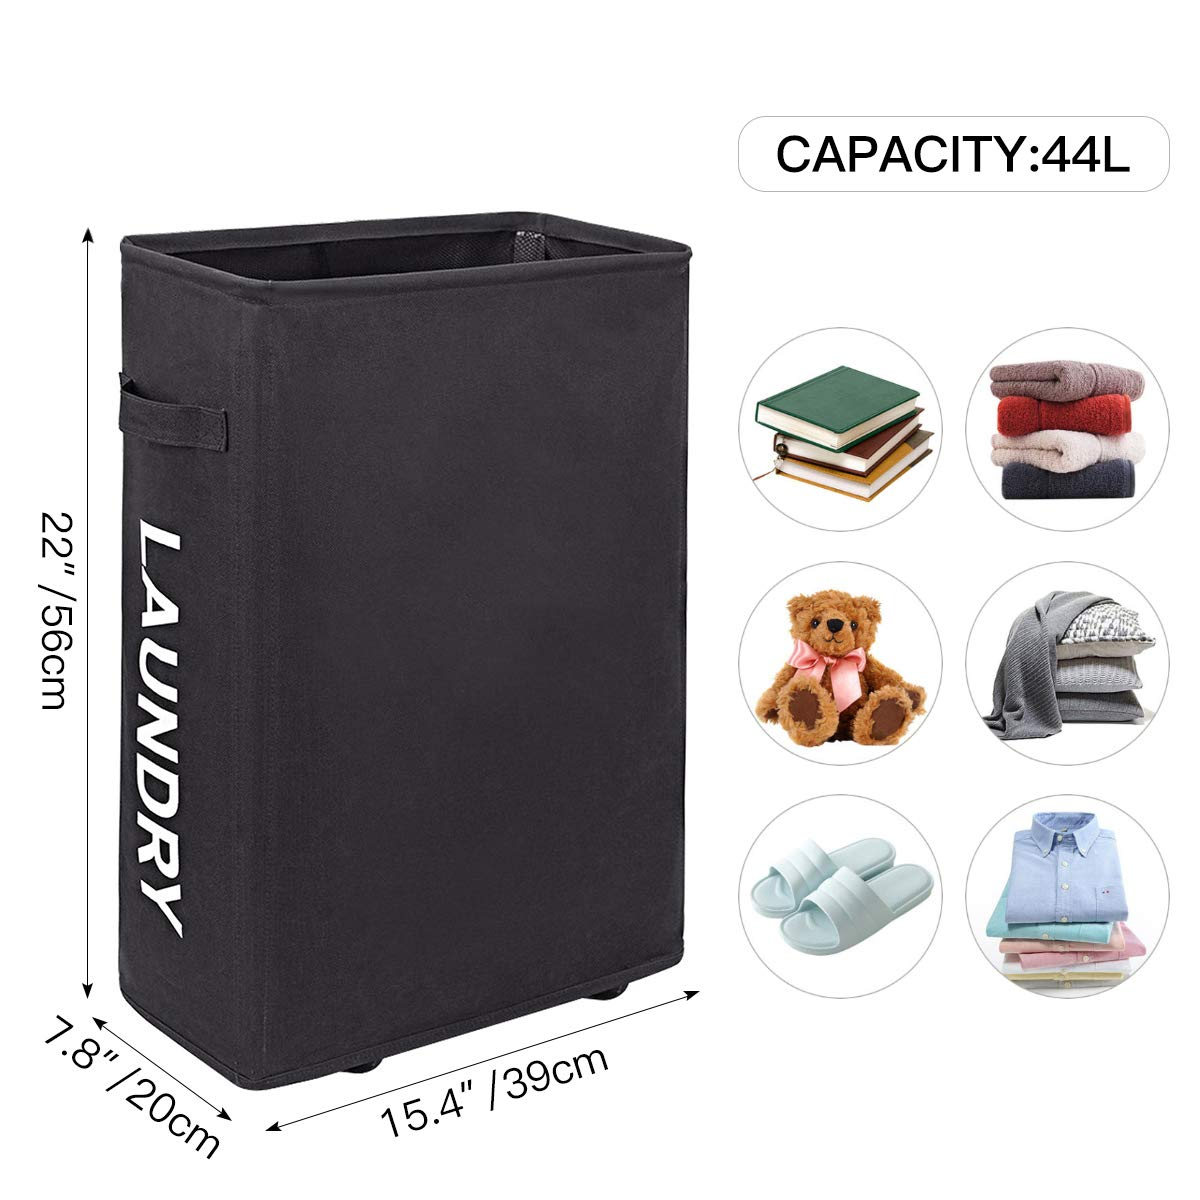 Wishpool 22 slim hampers for laundry collapsible rolling laundry basket with wheels narrow dirty clothes laundry